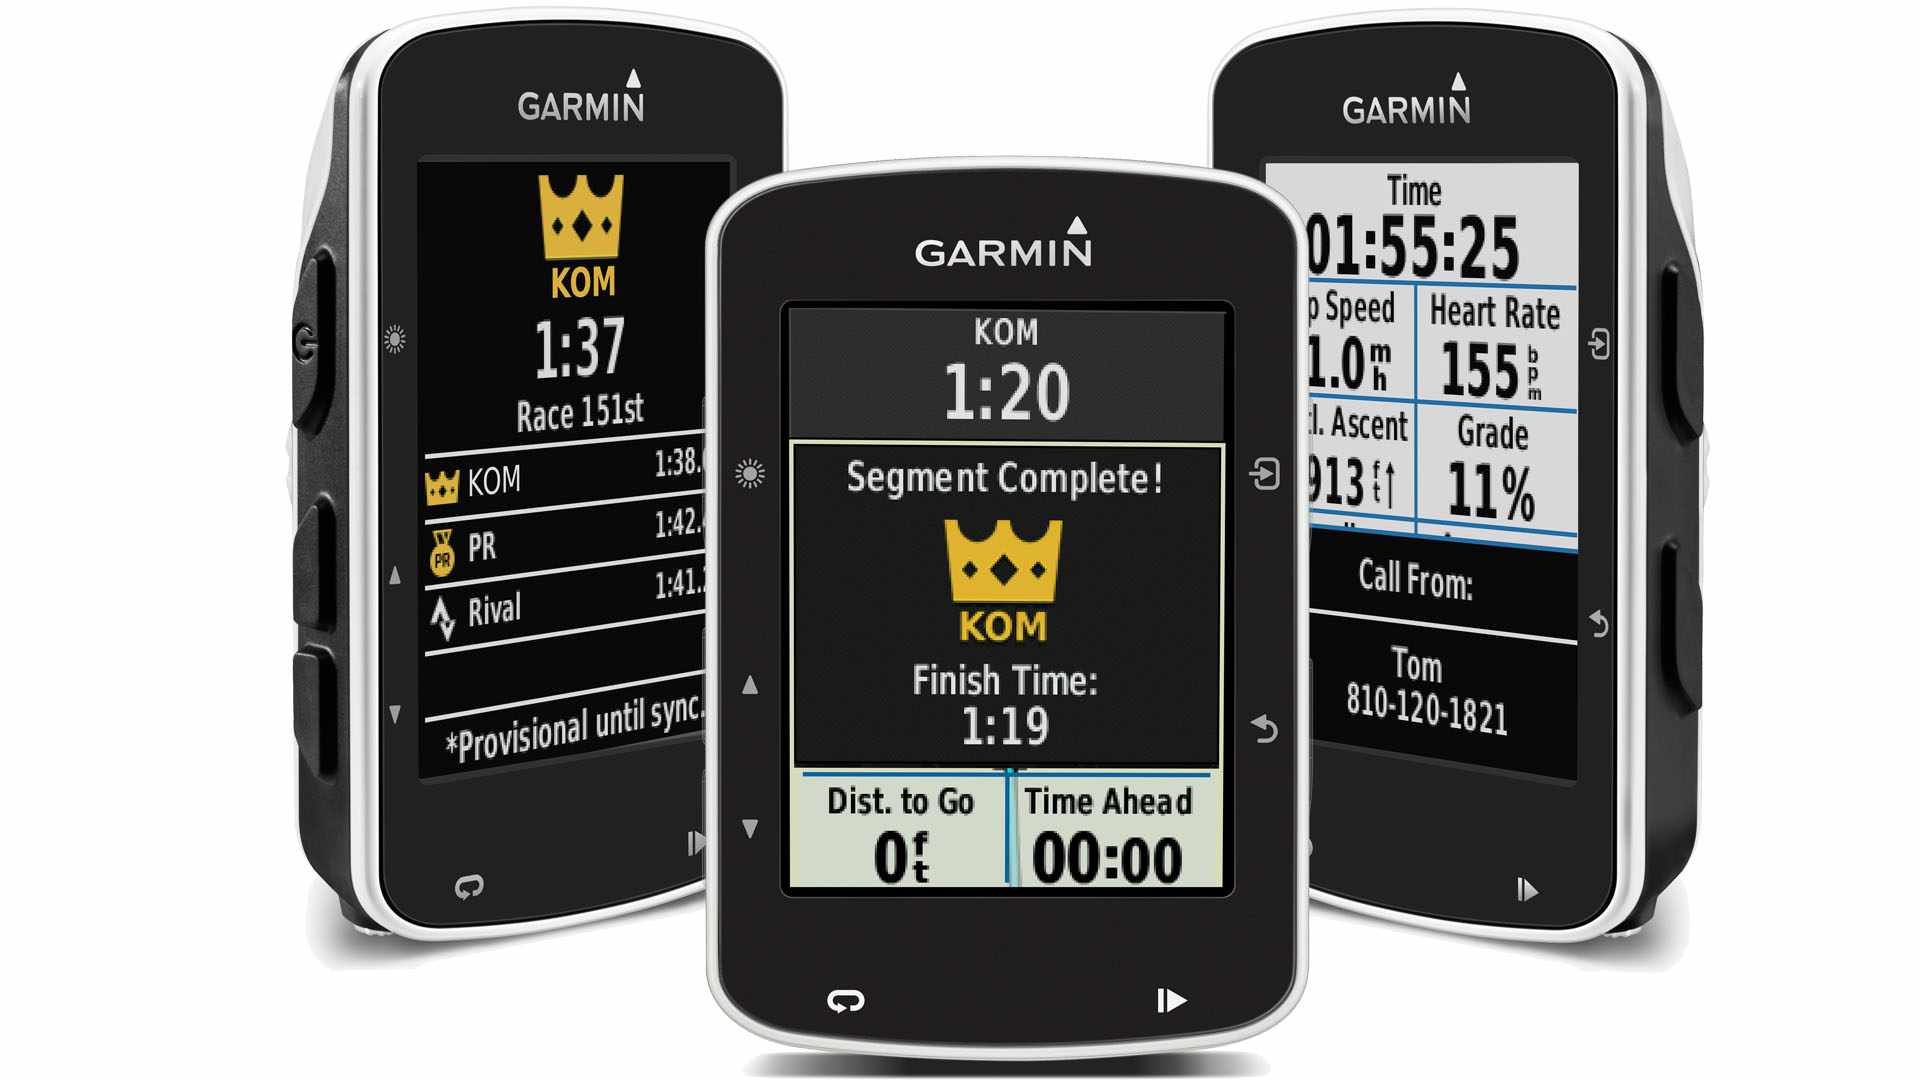 The new Garmin Edge 520